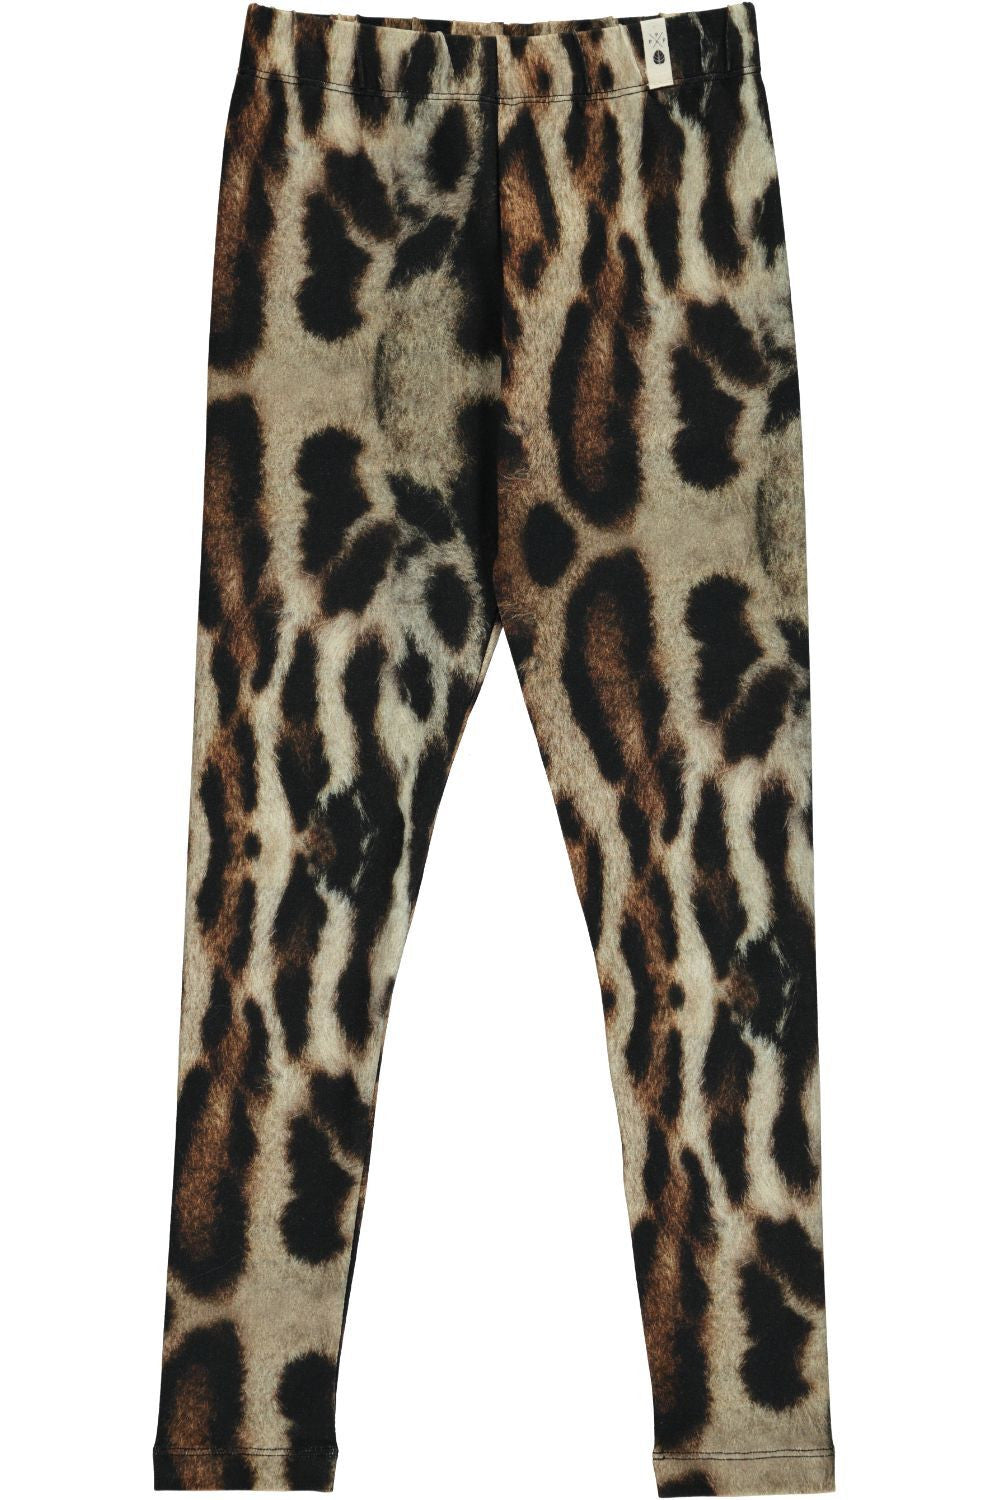 Popupshop Leo All Over Leggings